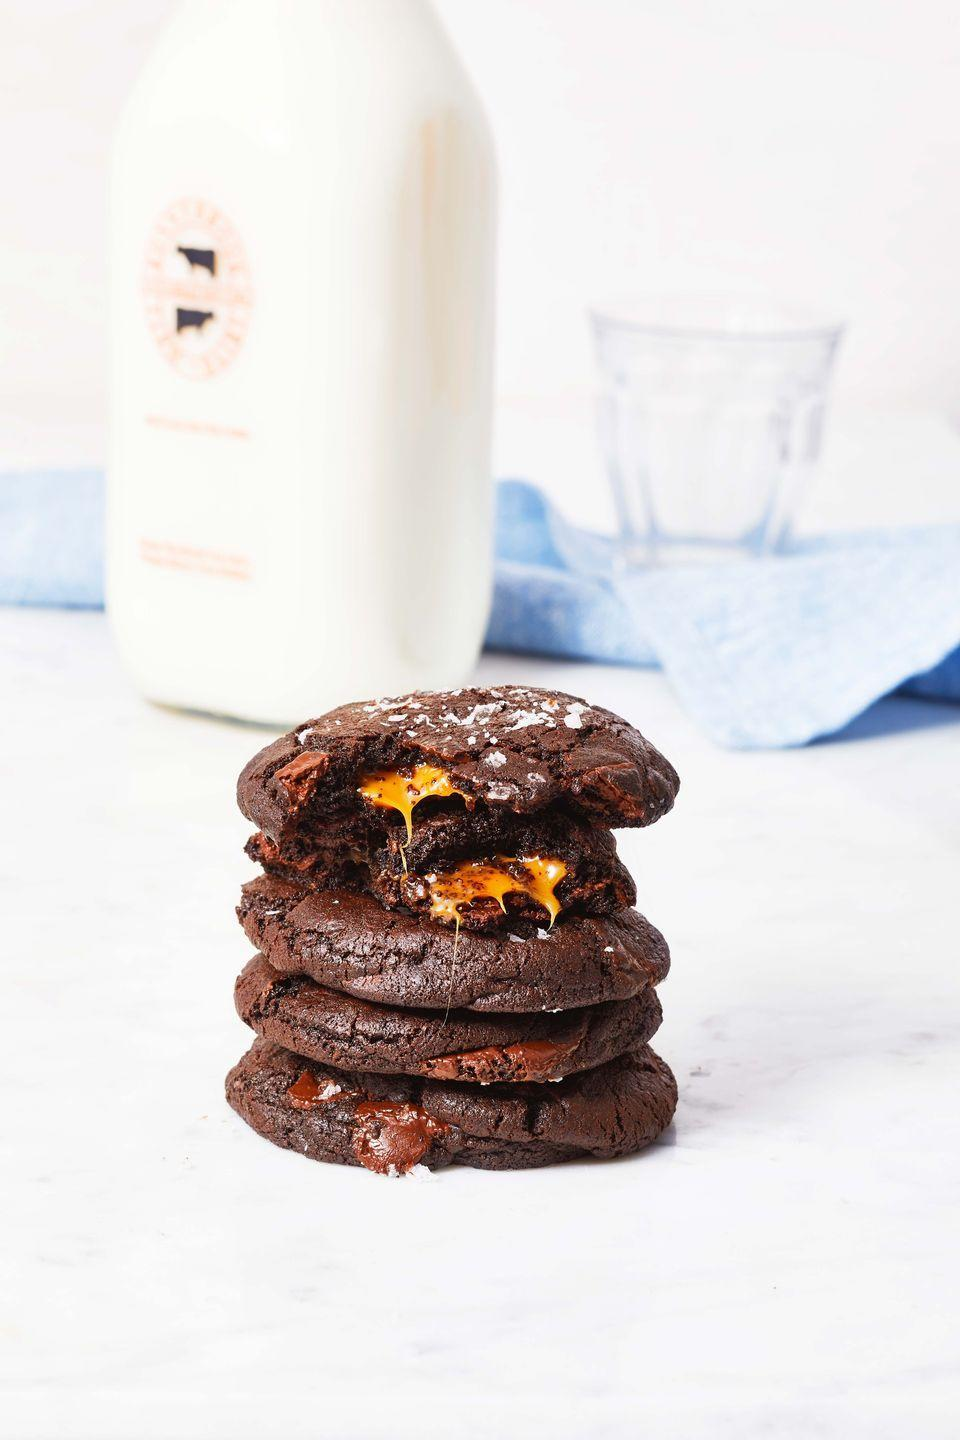 """<p>A soft caramel wrapped into double-chocolate dough makes warm, gooey and absolutely irresistible cookies.</p><p><em><a href=""""https://www.goodhousekeeping.com/food-recipes/dessert/a37135686/chocolate-caramel-cookies-recipe/"""" rel=""""nofollow noopener"""" target=""""_blank"""" data-ylk=""""slk:Get the recipe for Chocolate Caramel Cookies »"""" class=""""link rapid-noclick-resp"""">Get the recipe for Chocolate Caramel Cookies »</a></em></p>"""